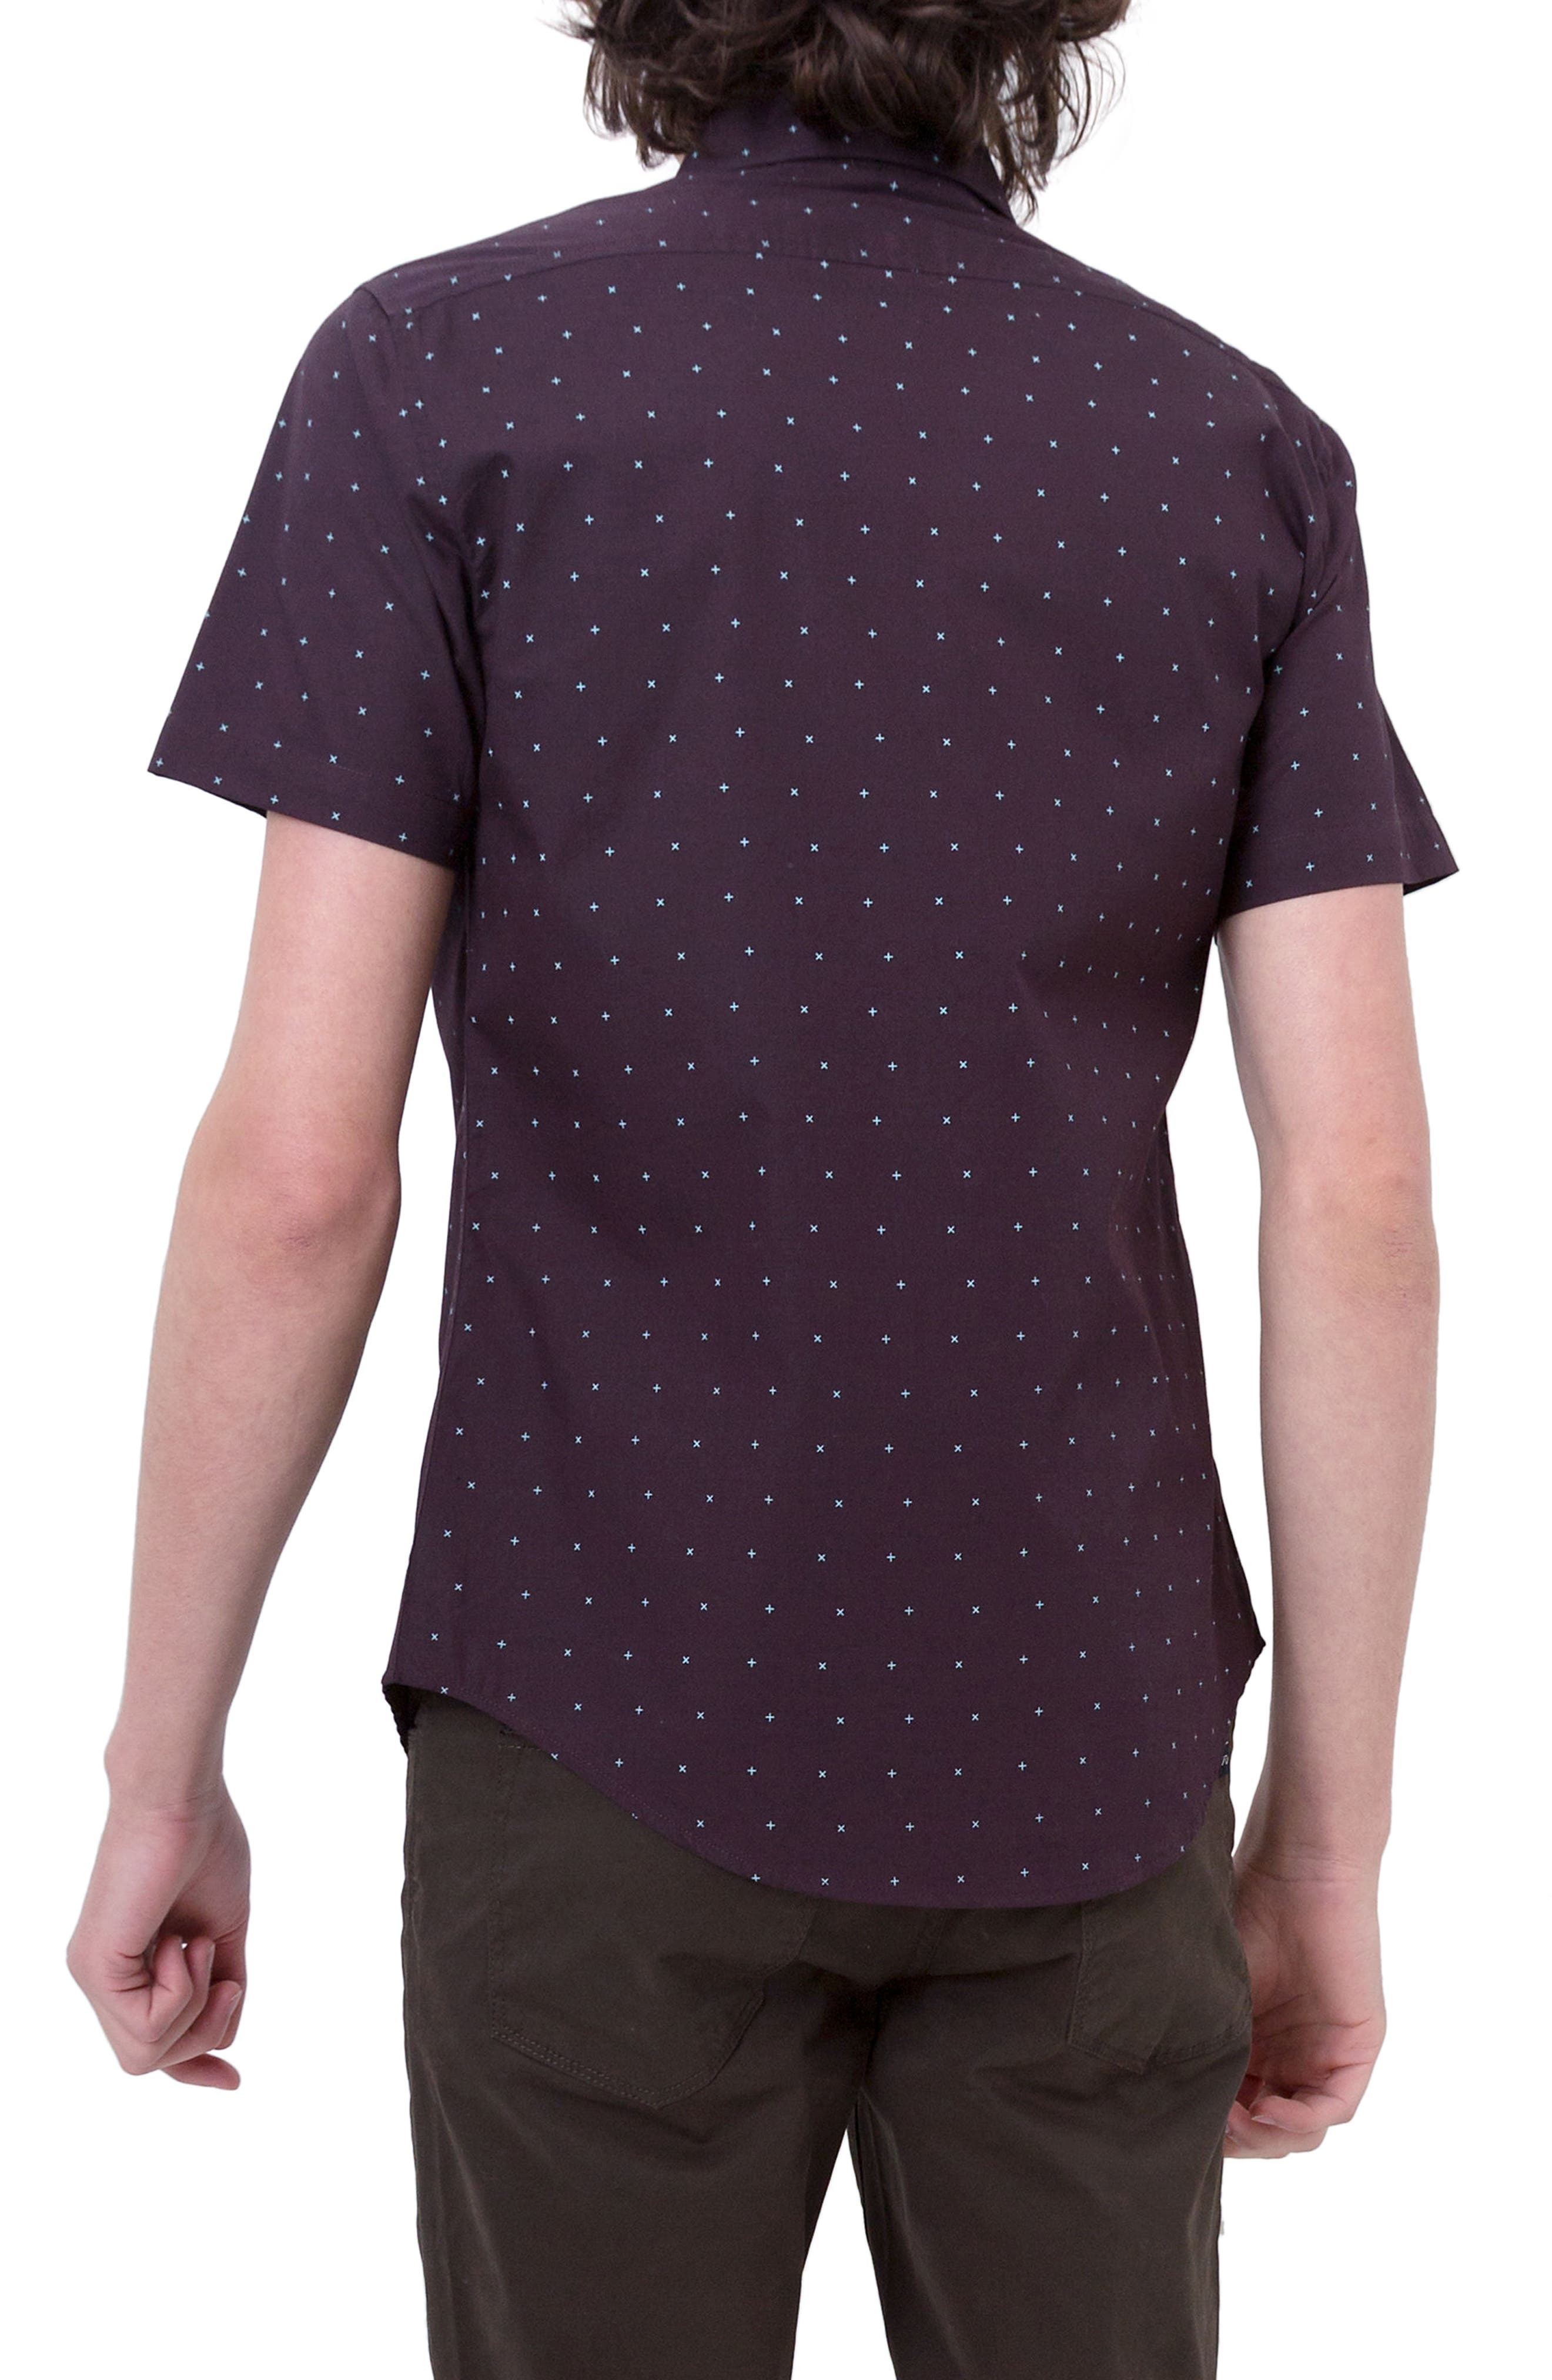 Hit Parade Woven Shirt,                             Alternate thumbnail 2, color,                             930